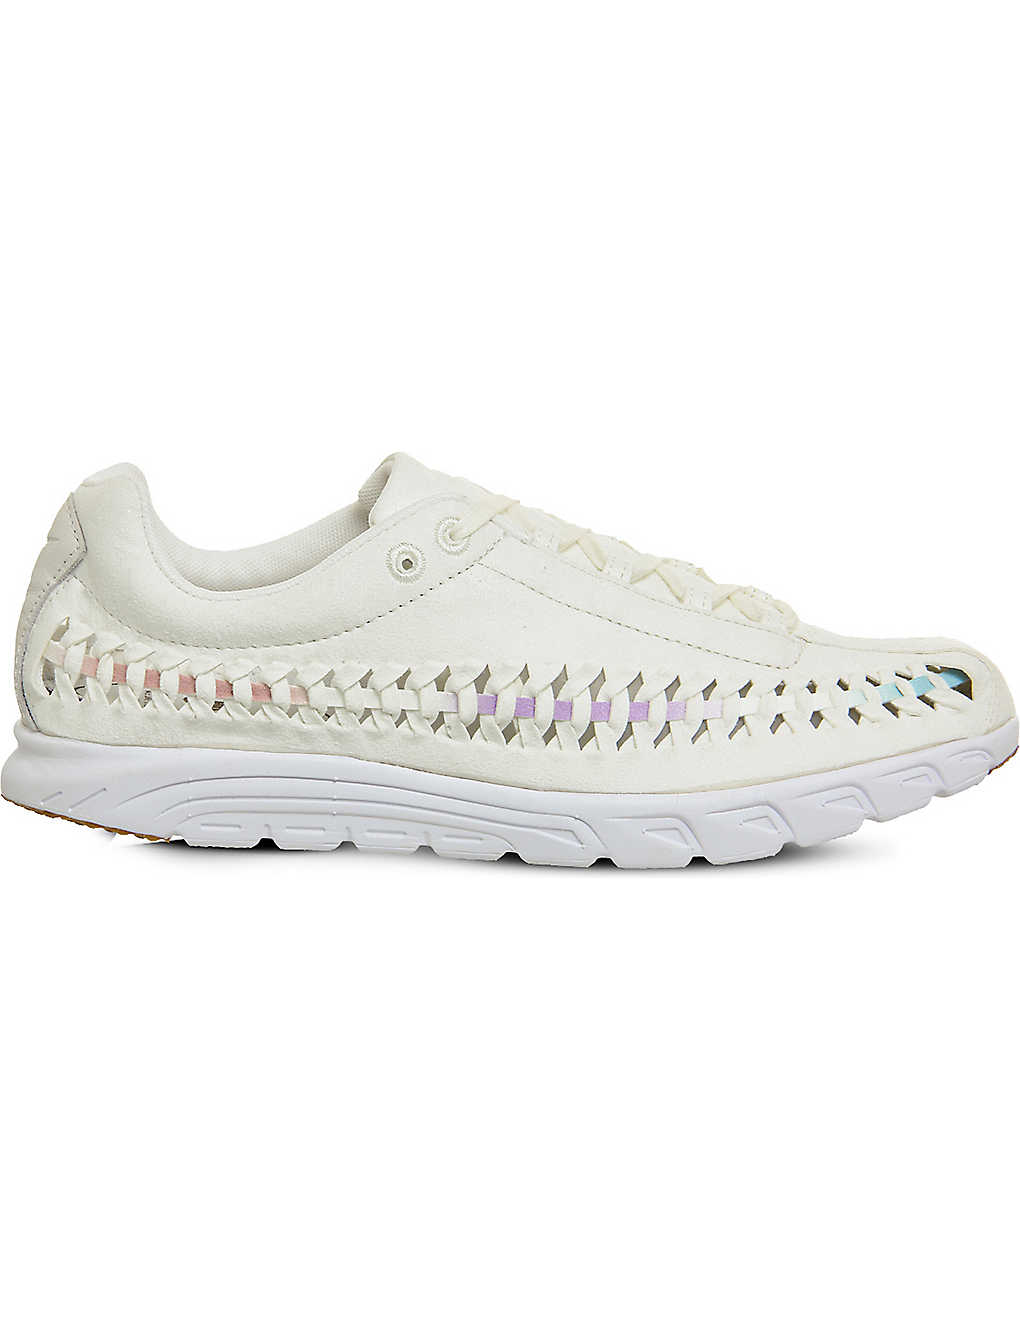 the best attitude ddc42 ed492 NIKE Mayfly woven trainers